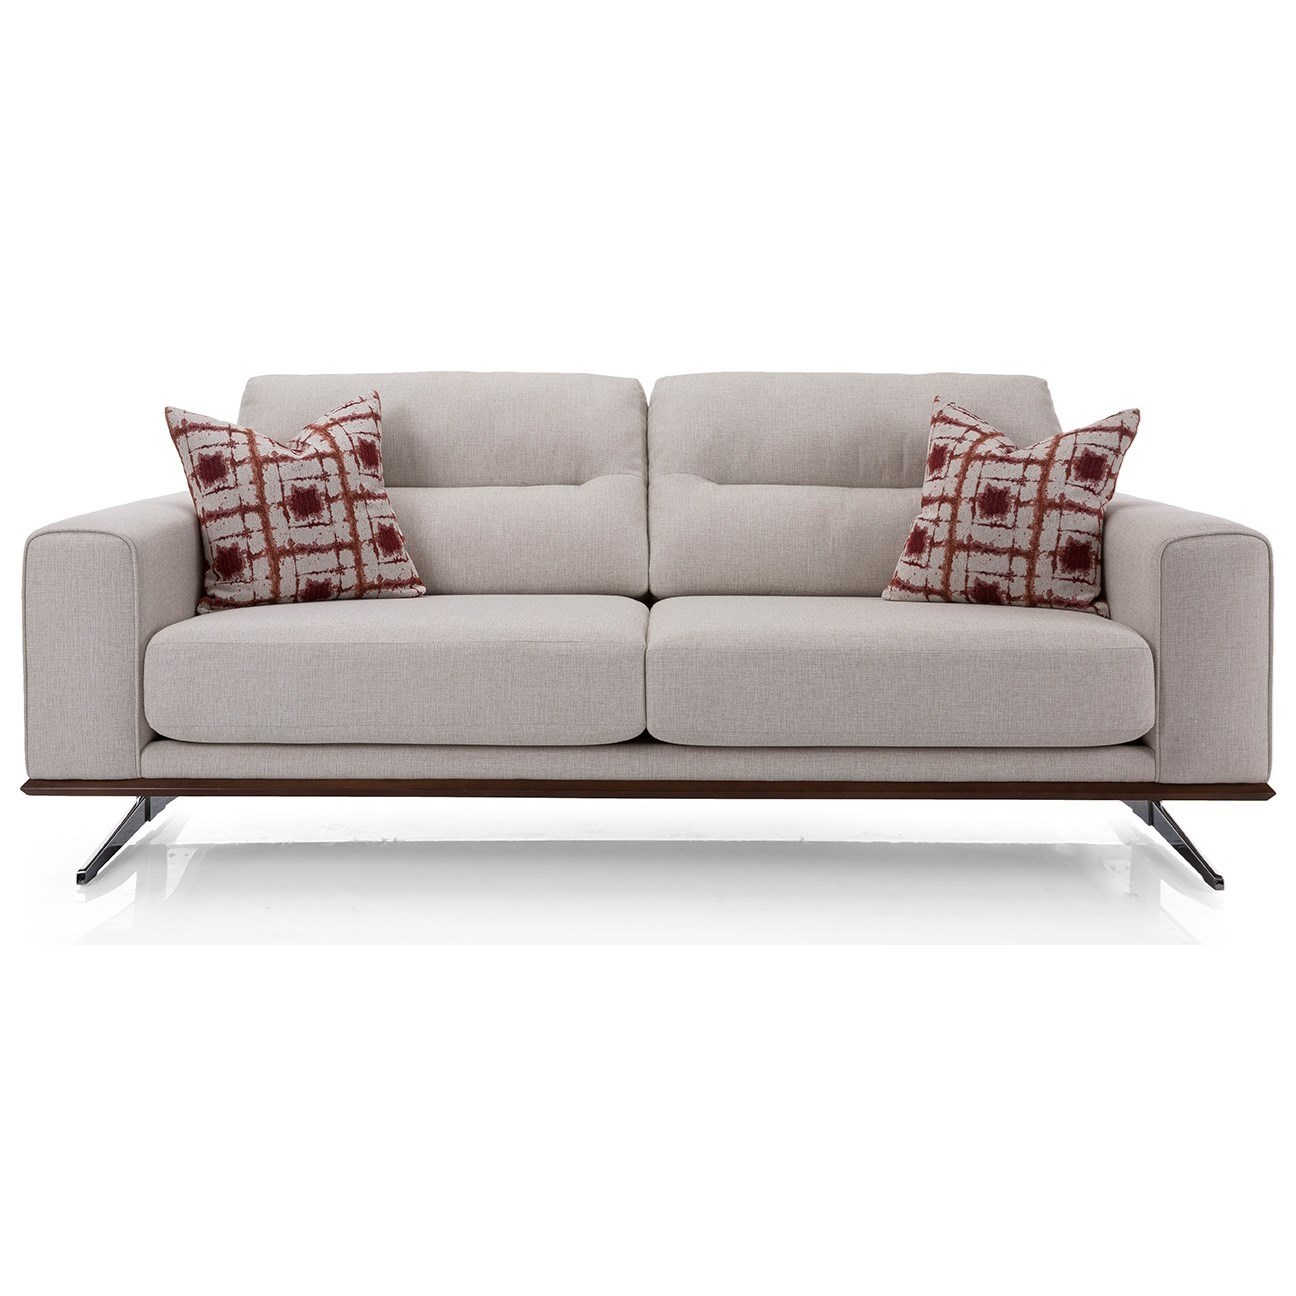 2030 Sofa by Decor-Rest at Upper Room Home Furnishings